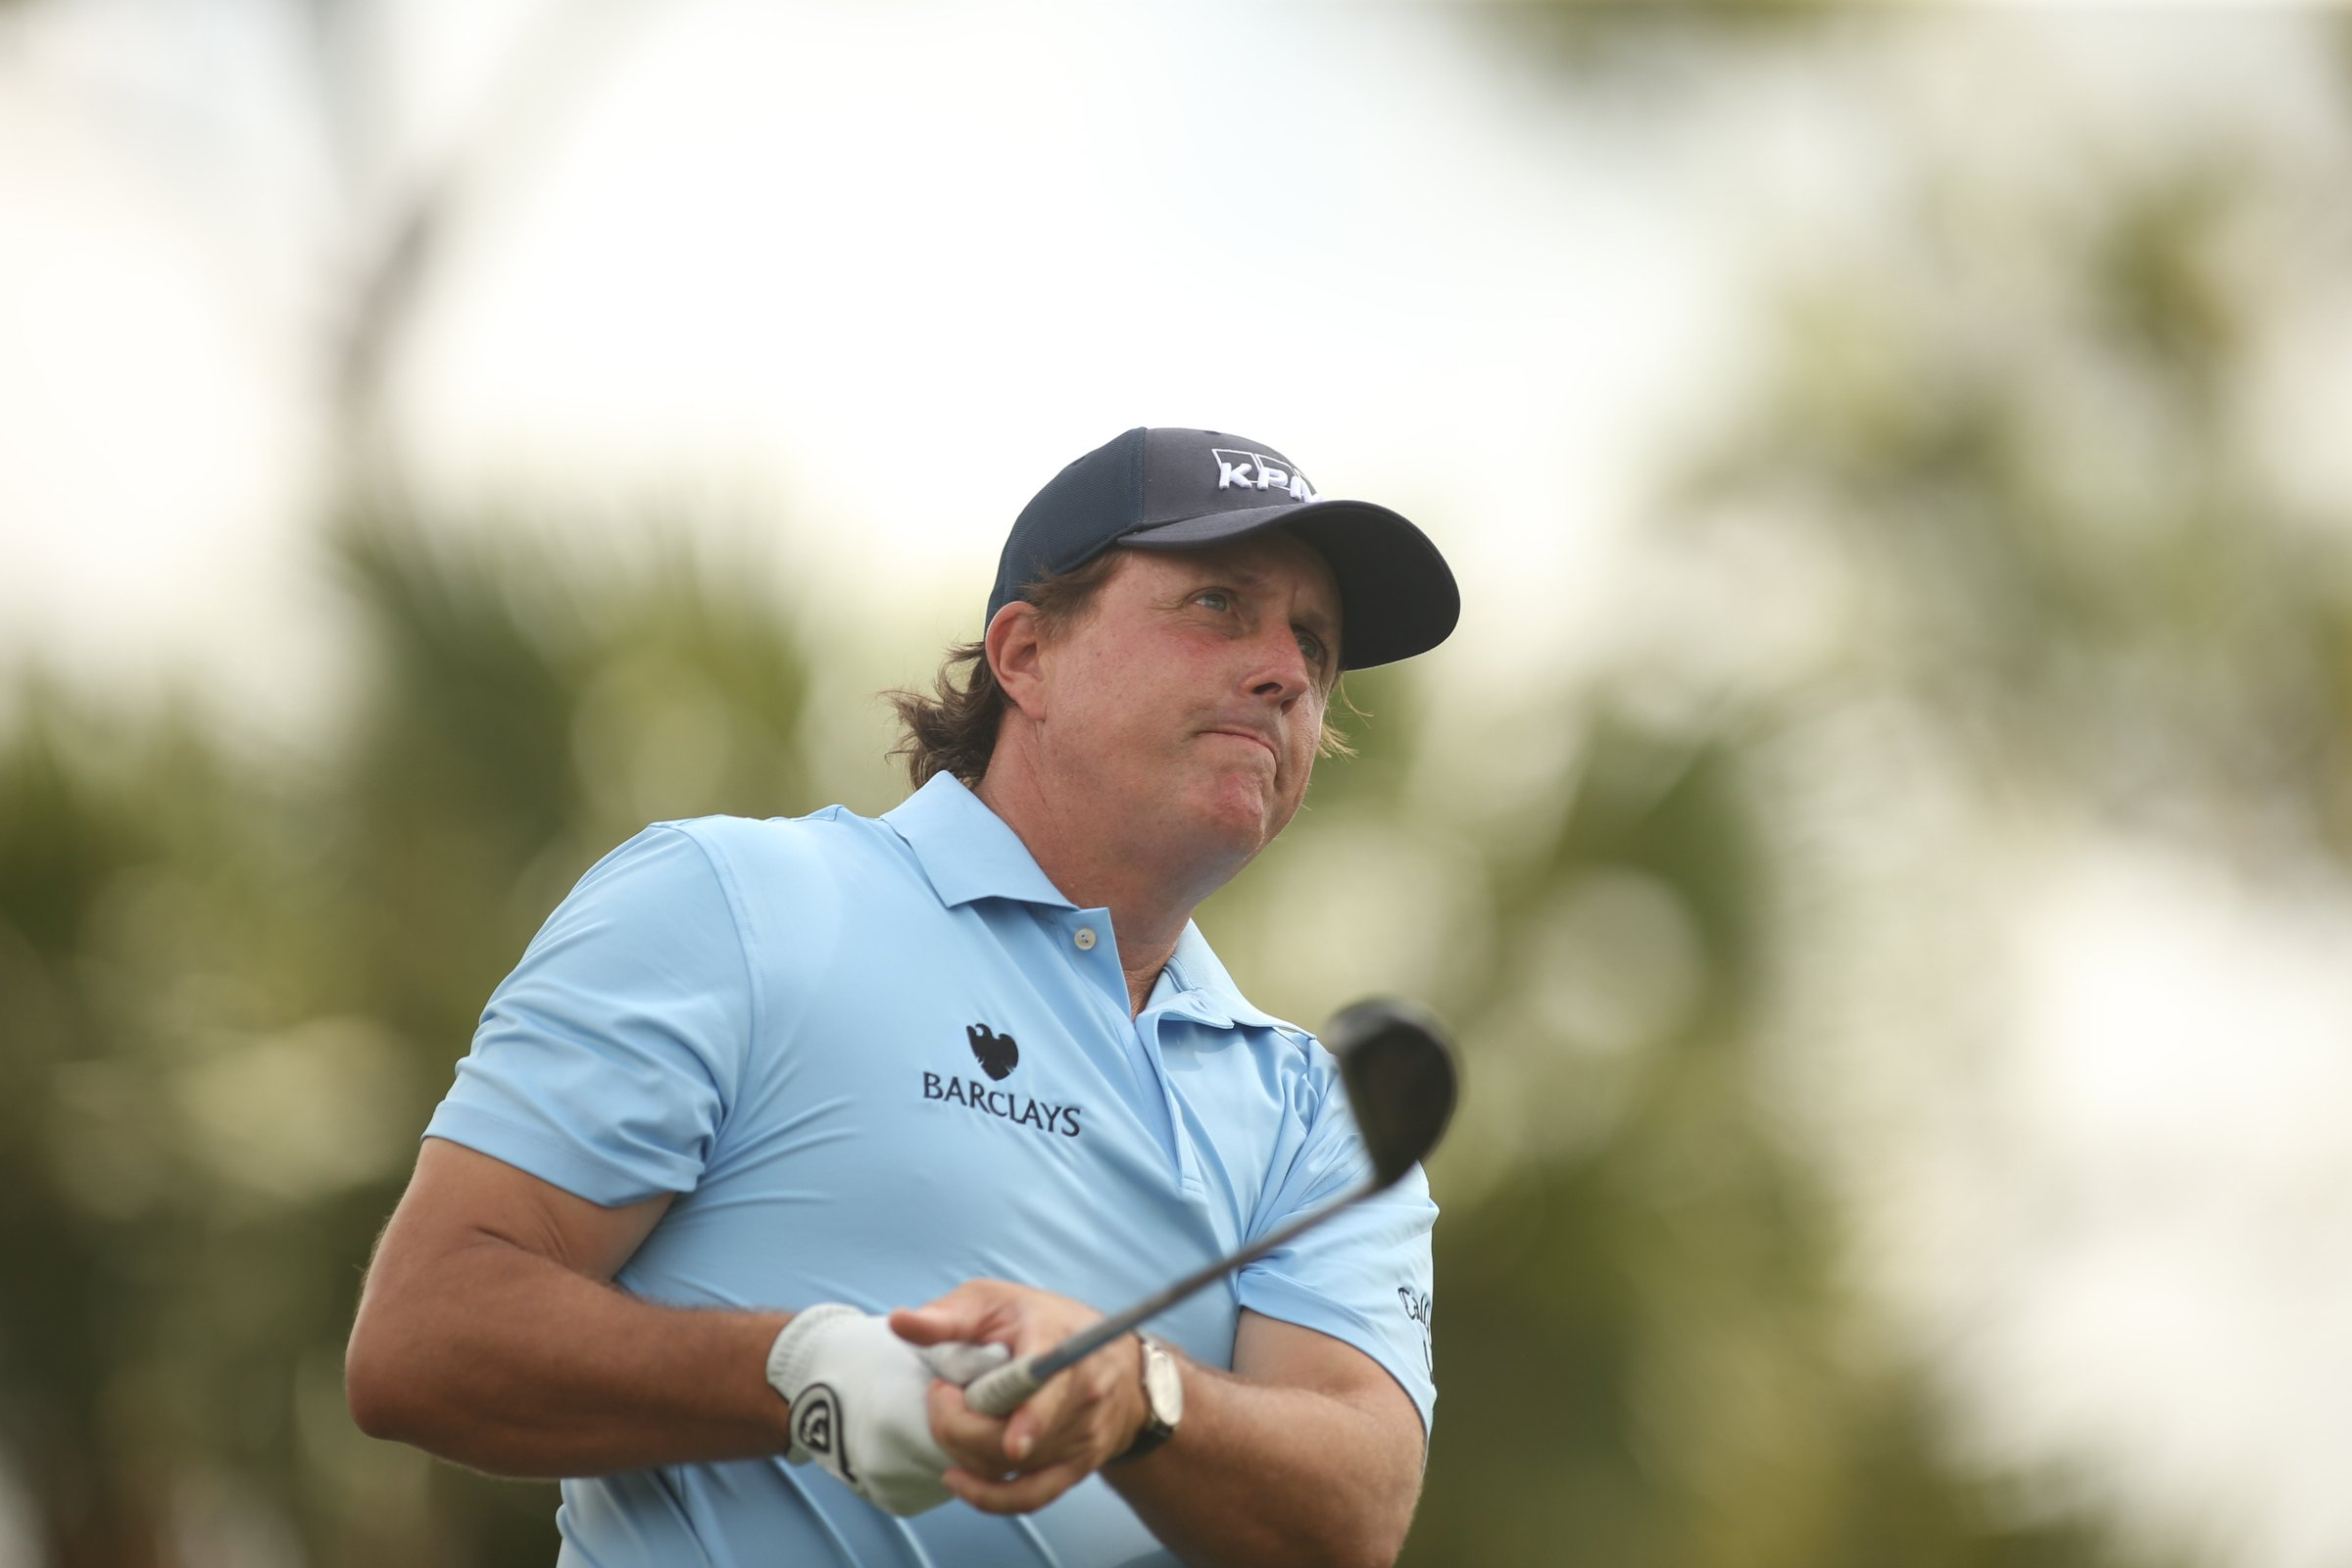 Phil Mickelson has yet to post a top-10 finish in seven starts in 2015.